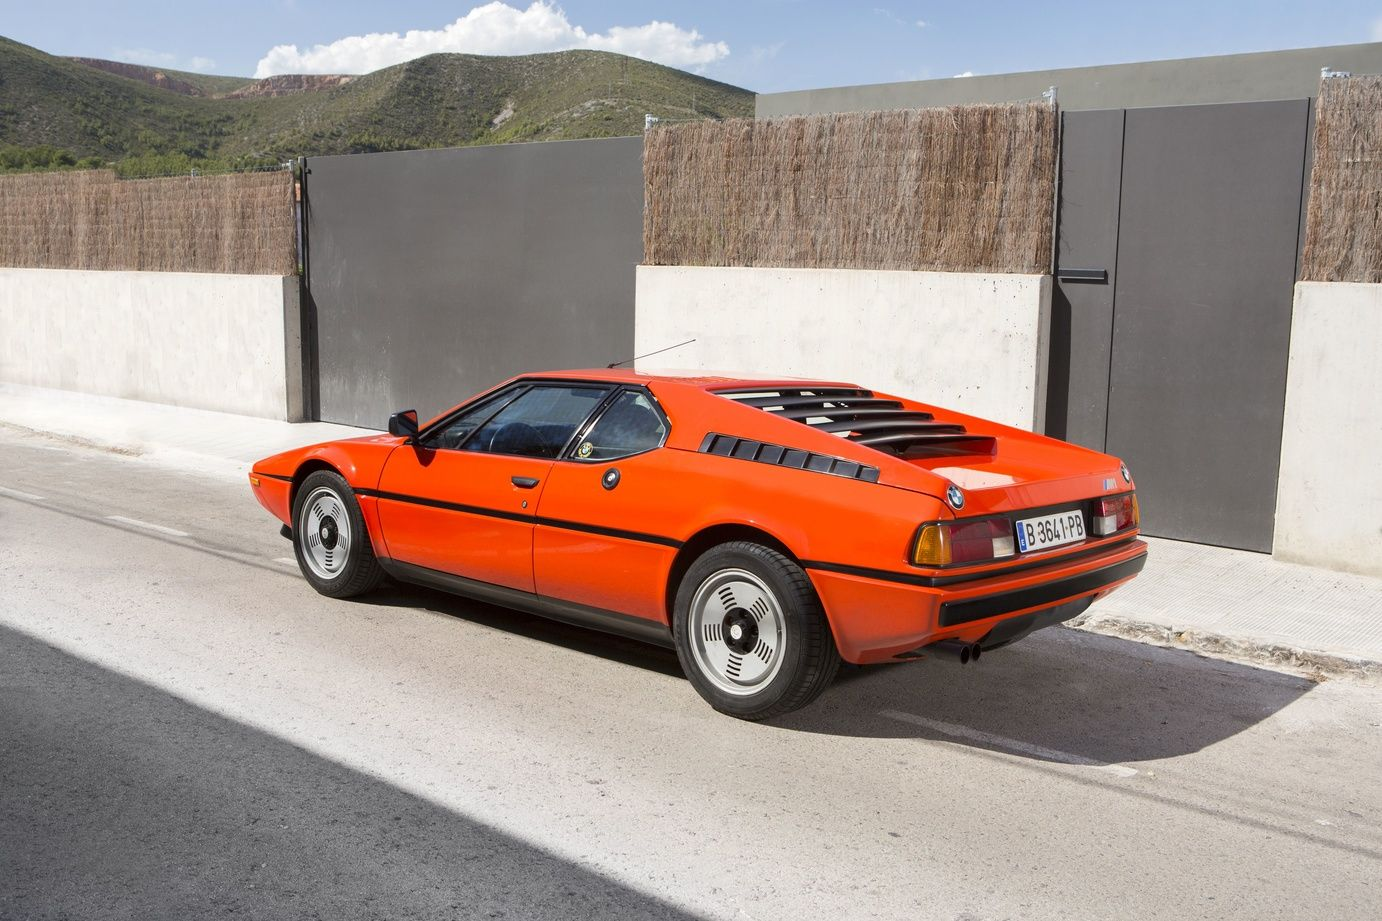 1979 BMW M1 | Jan B. Lühn | BMW | Pinterest | Bmw m1, BMW and Cars